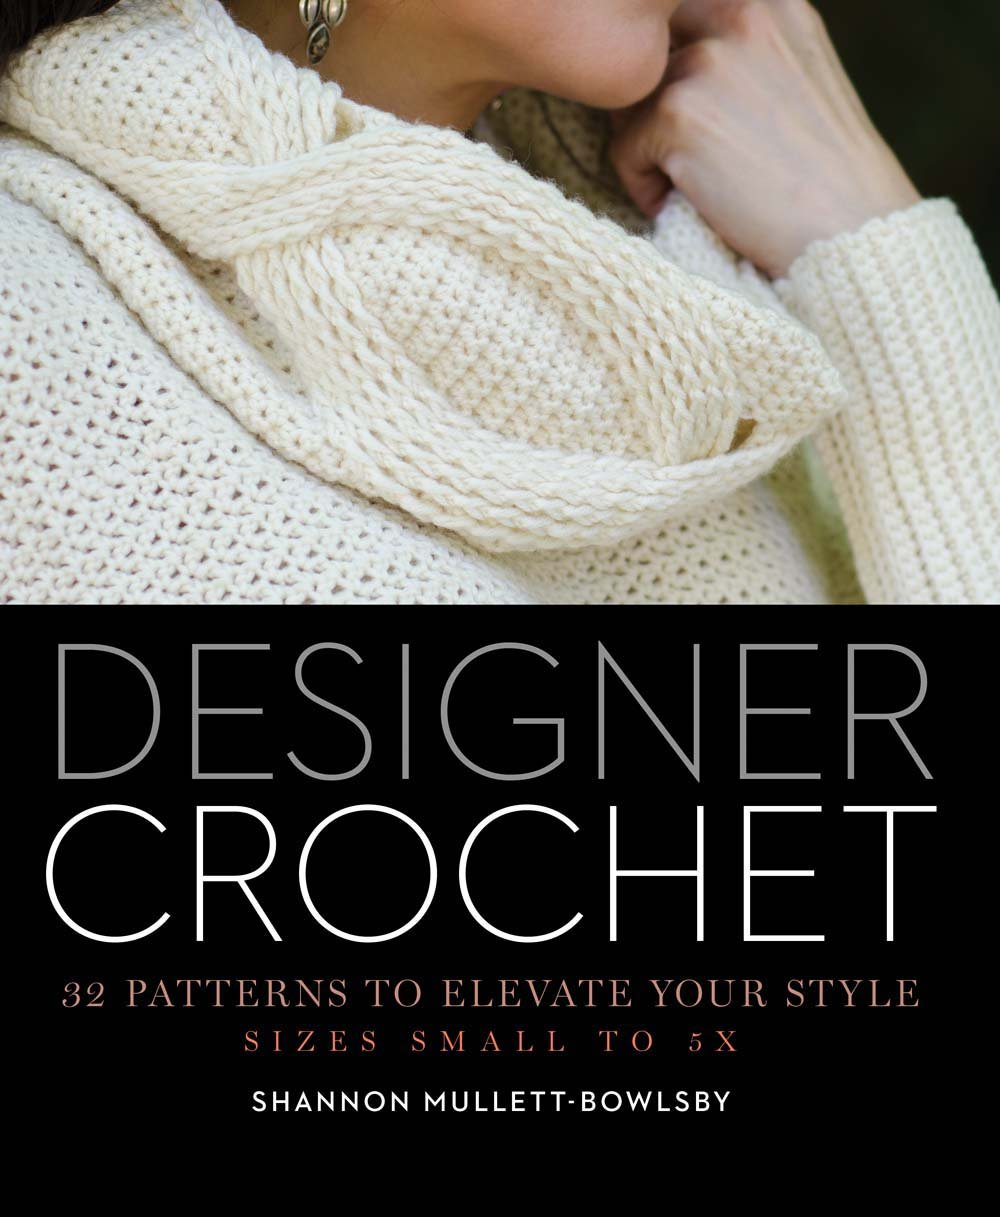 Designer Crochet: 32 Patterns to Elevate Your Style